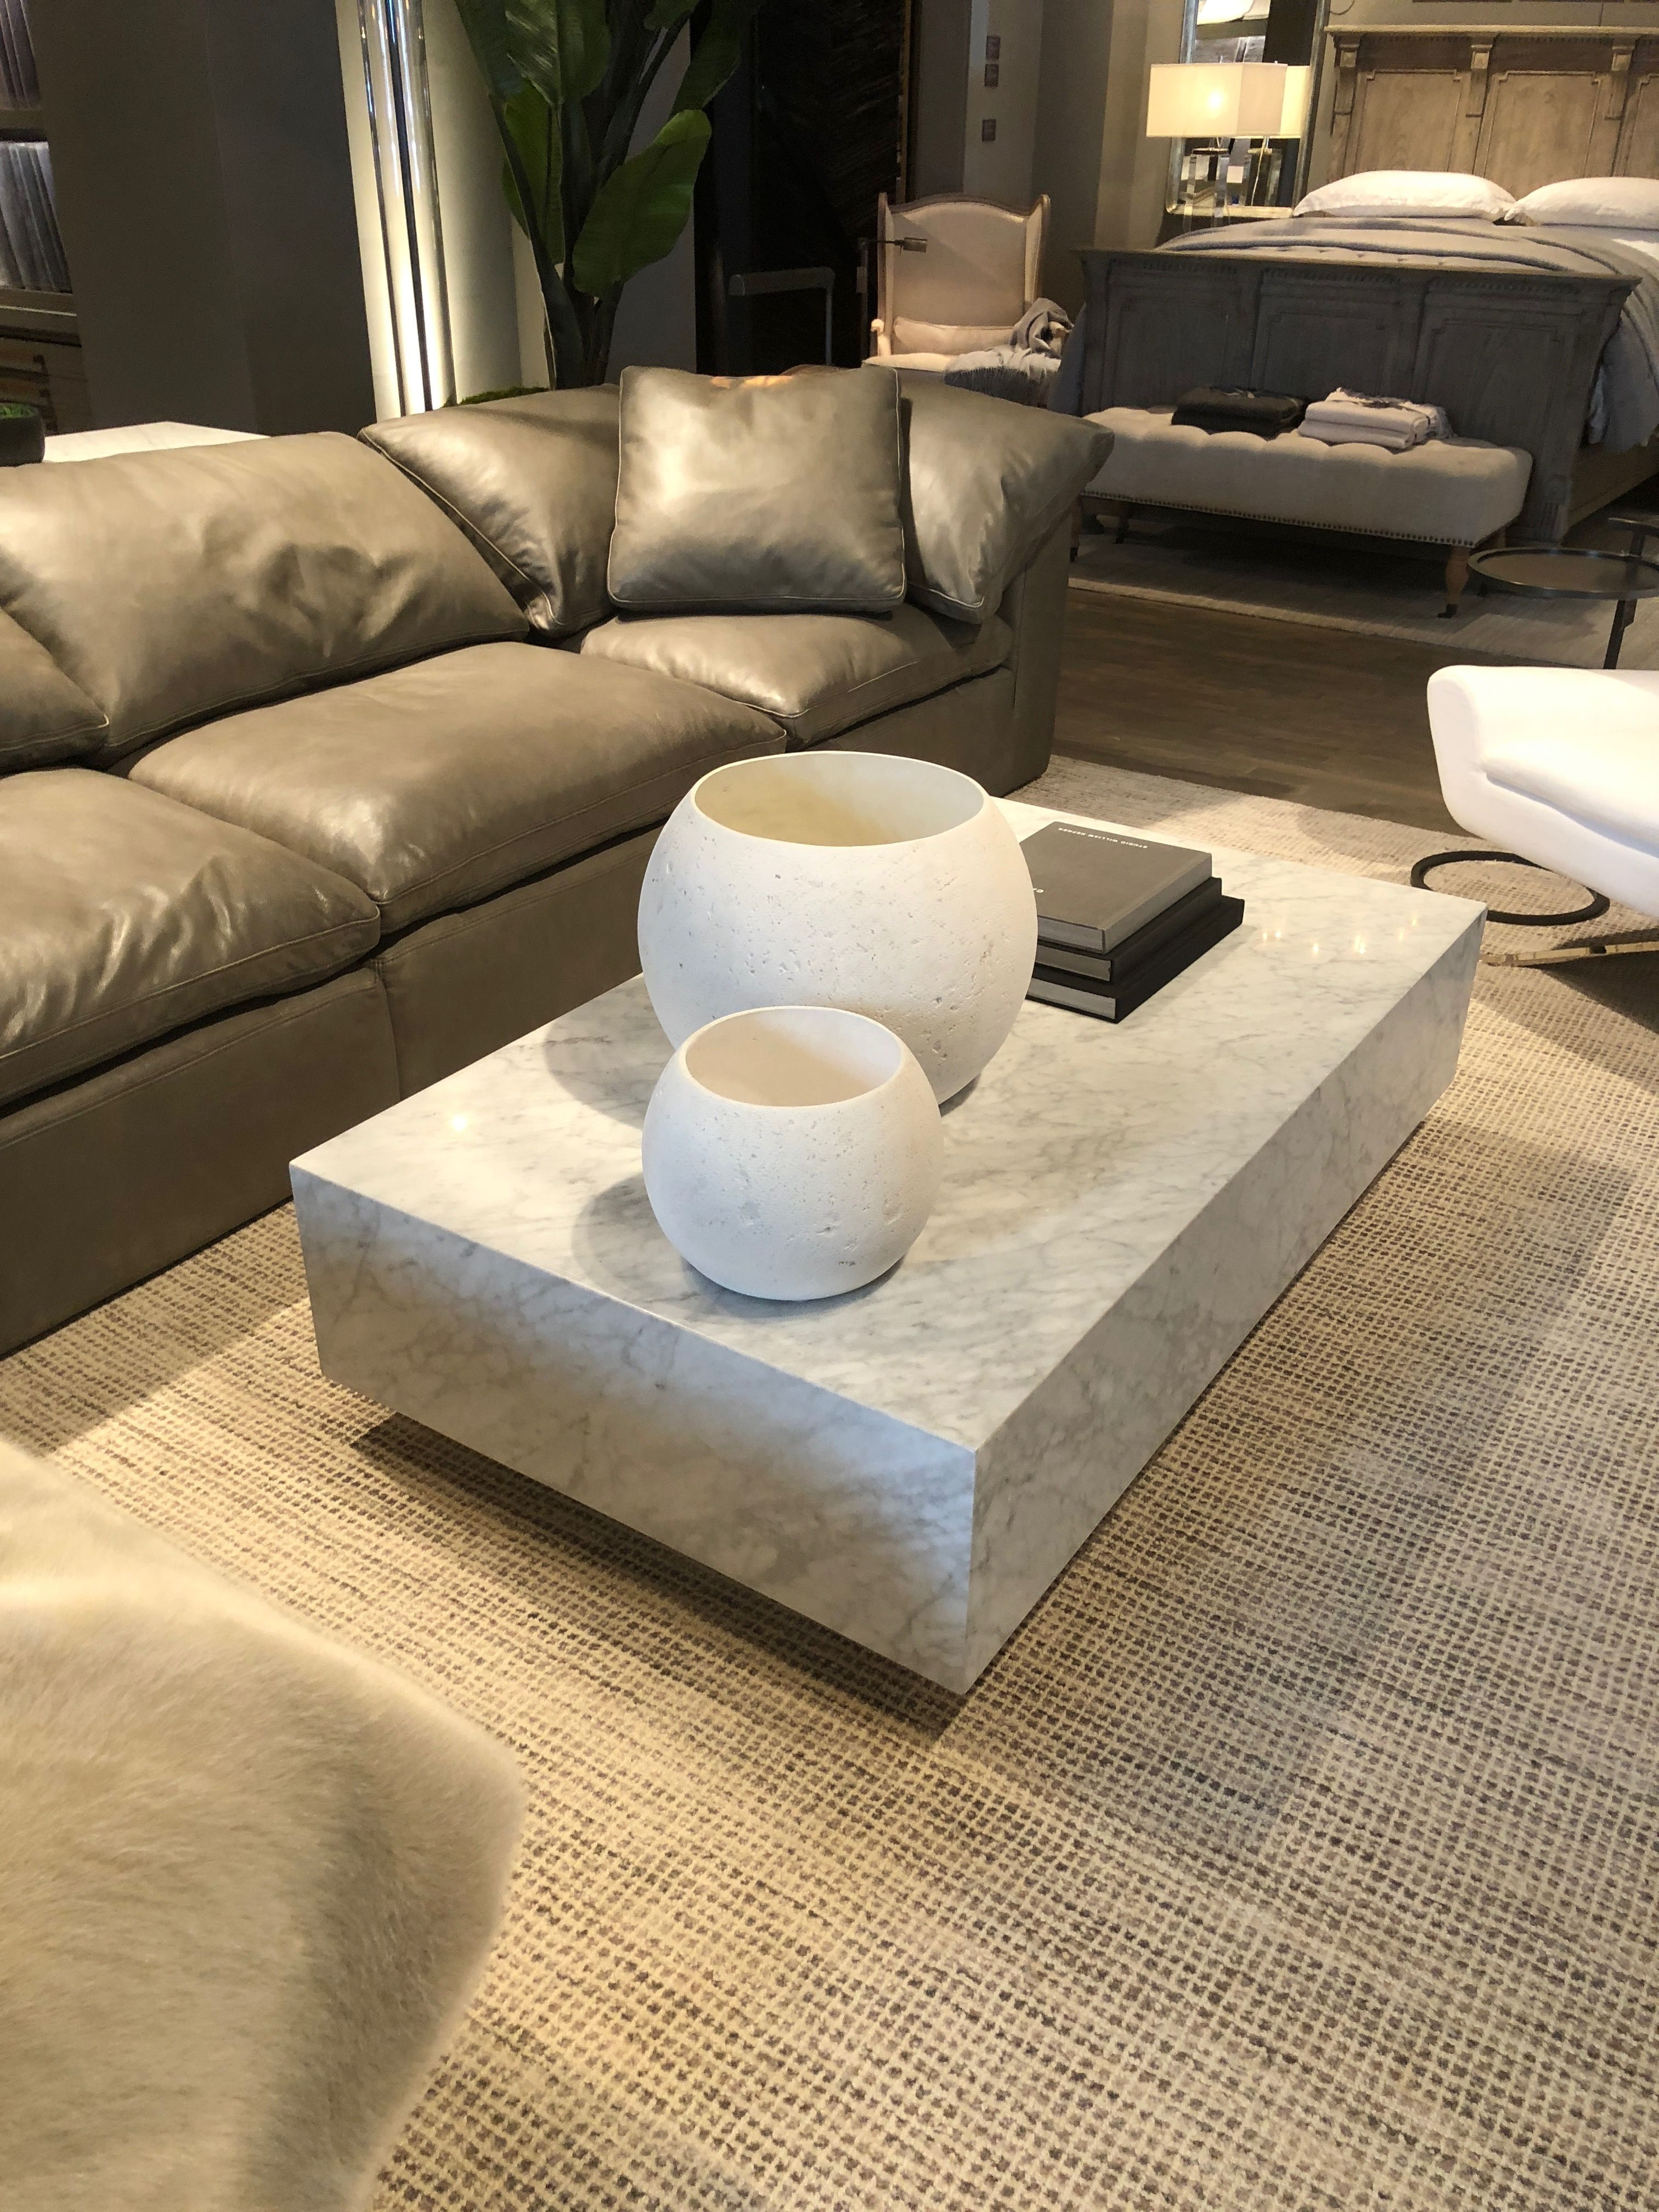 Restoration Hardware Marble Coffee Table Coffee Table Square Coffee Table Leather Ottoman Coffee Table [ 4032 x 3024 Pixel ]